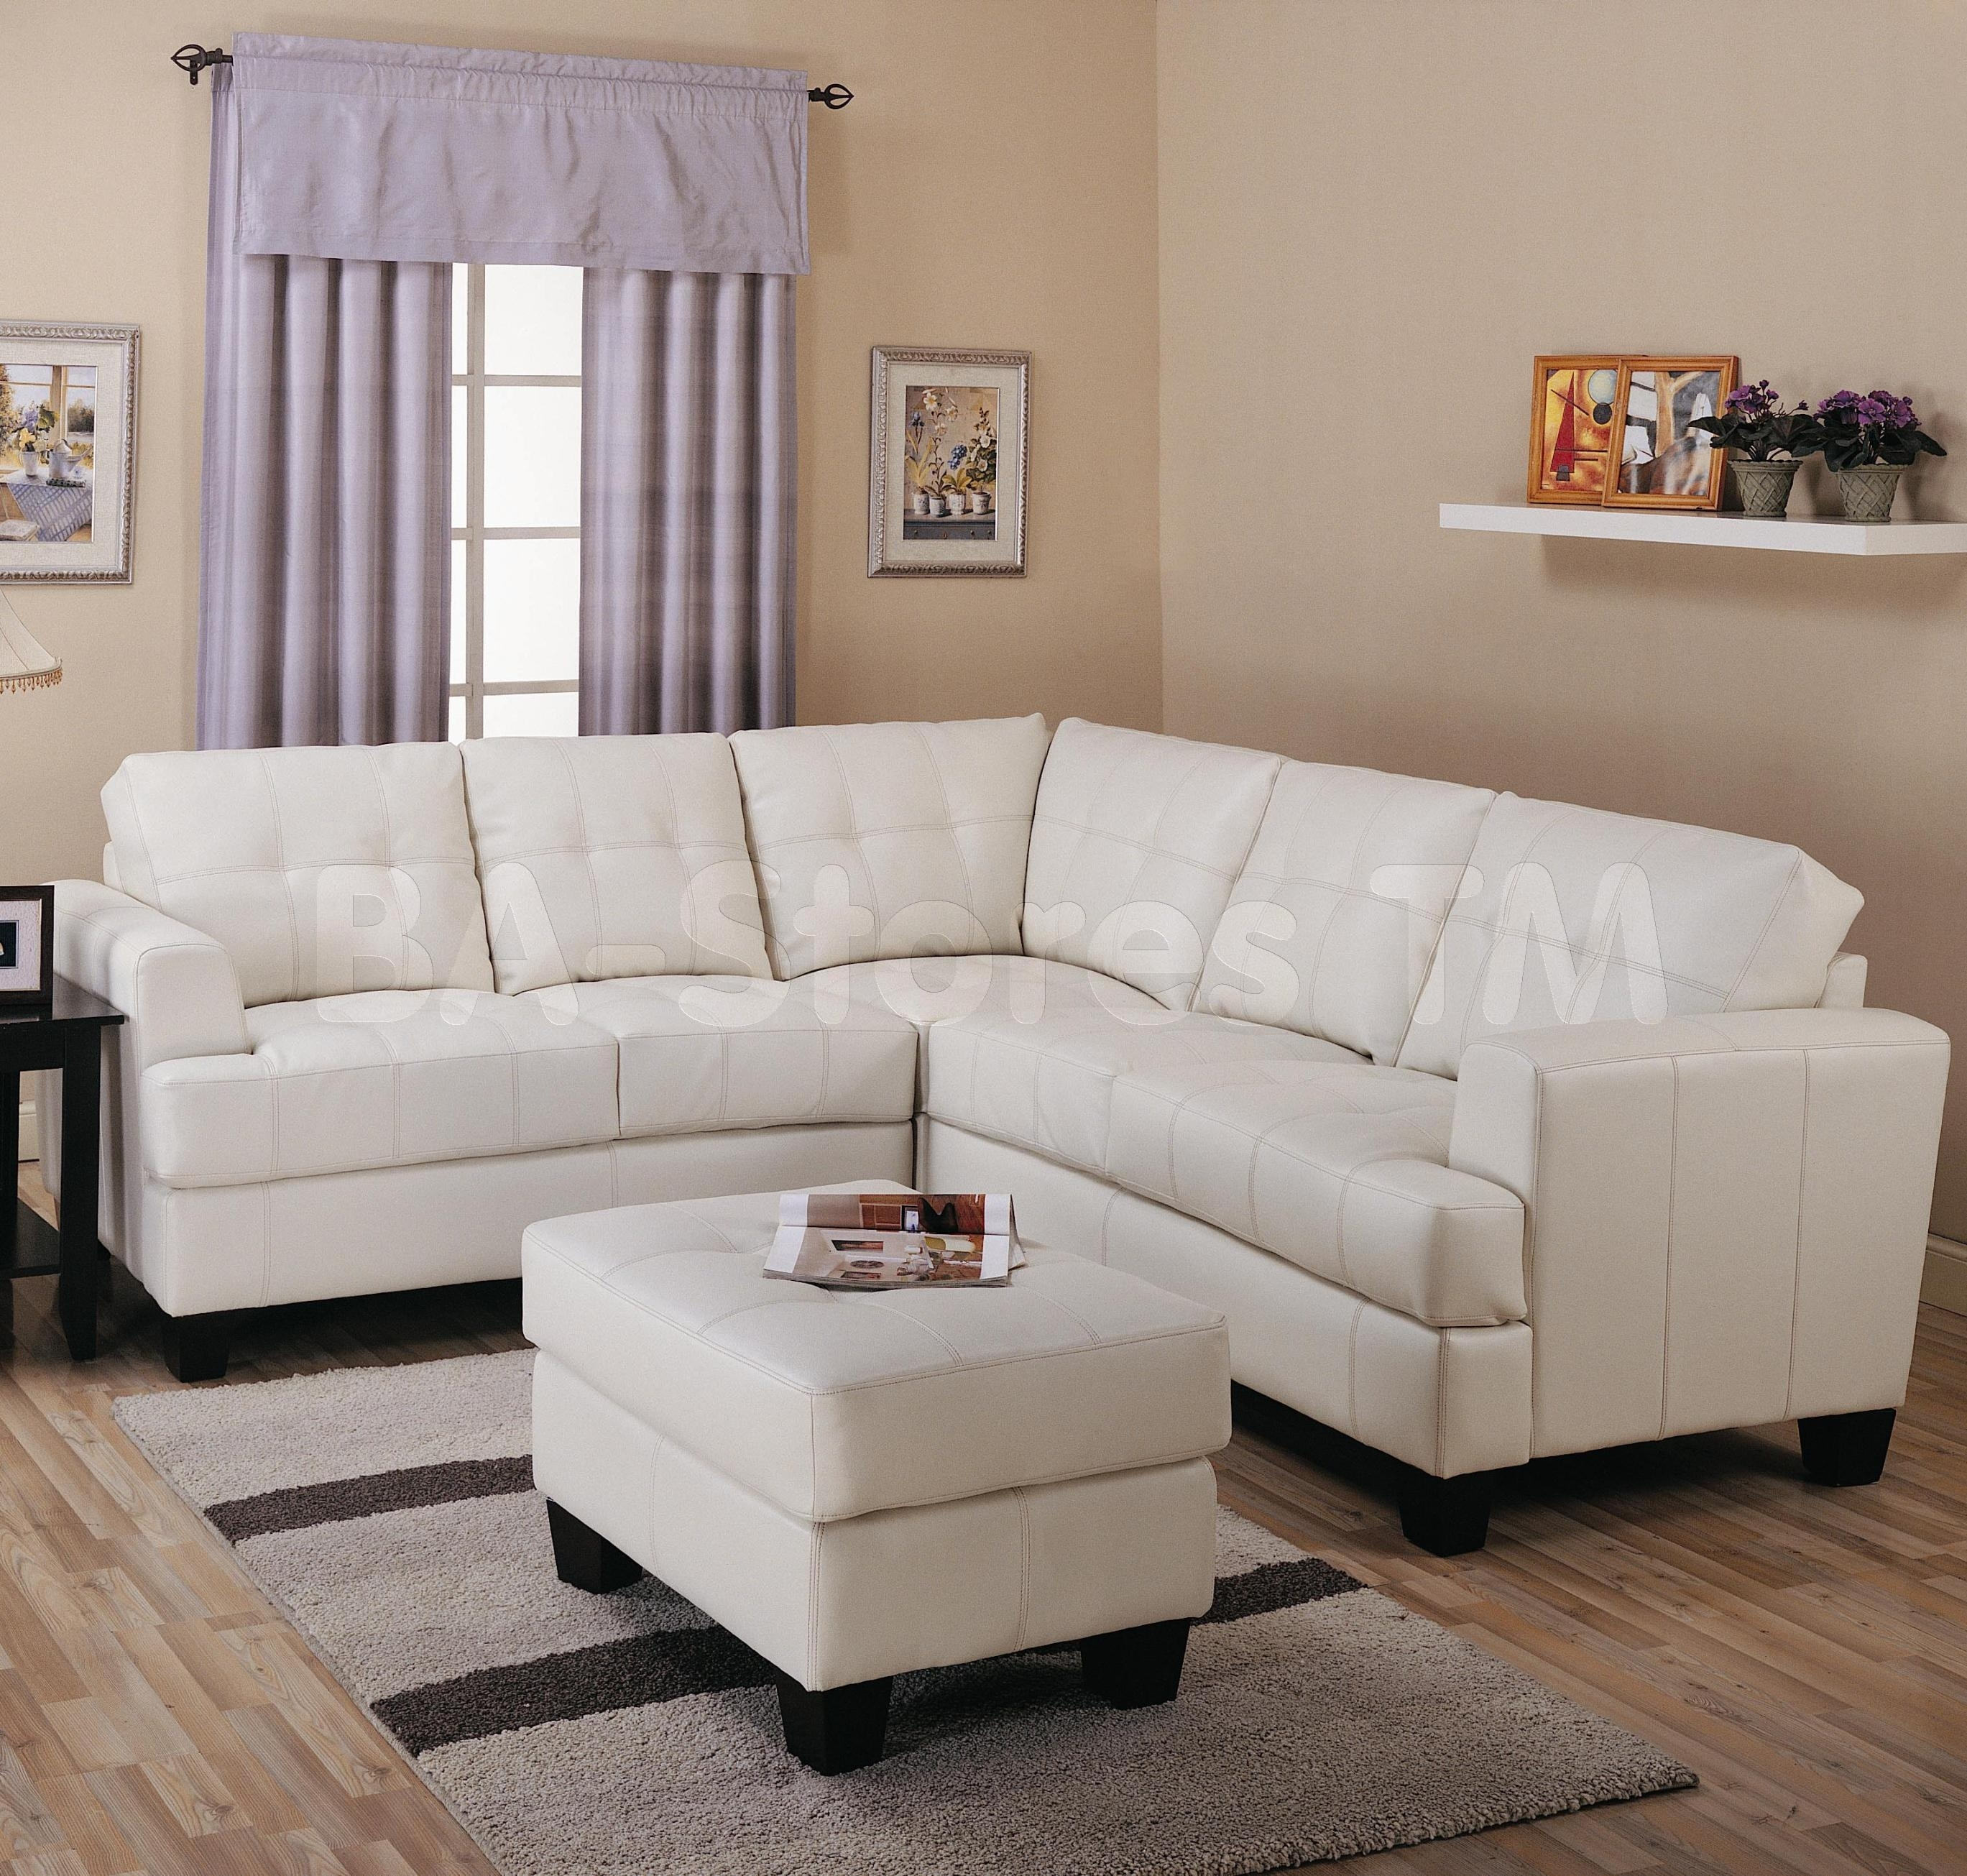 Furniture : Sectional Couch Under 1000 Corner Couch Manufacturers intended for 80X80 Sectional Sofas (Image 3 of 10)